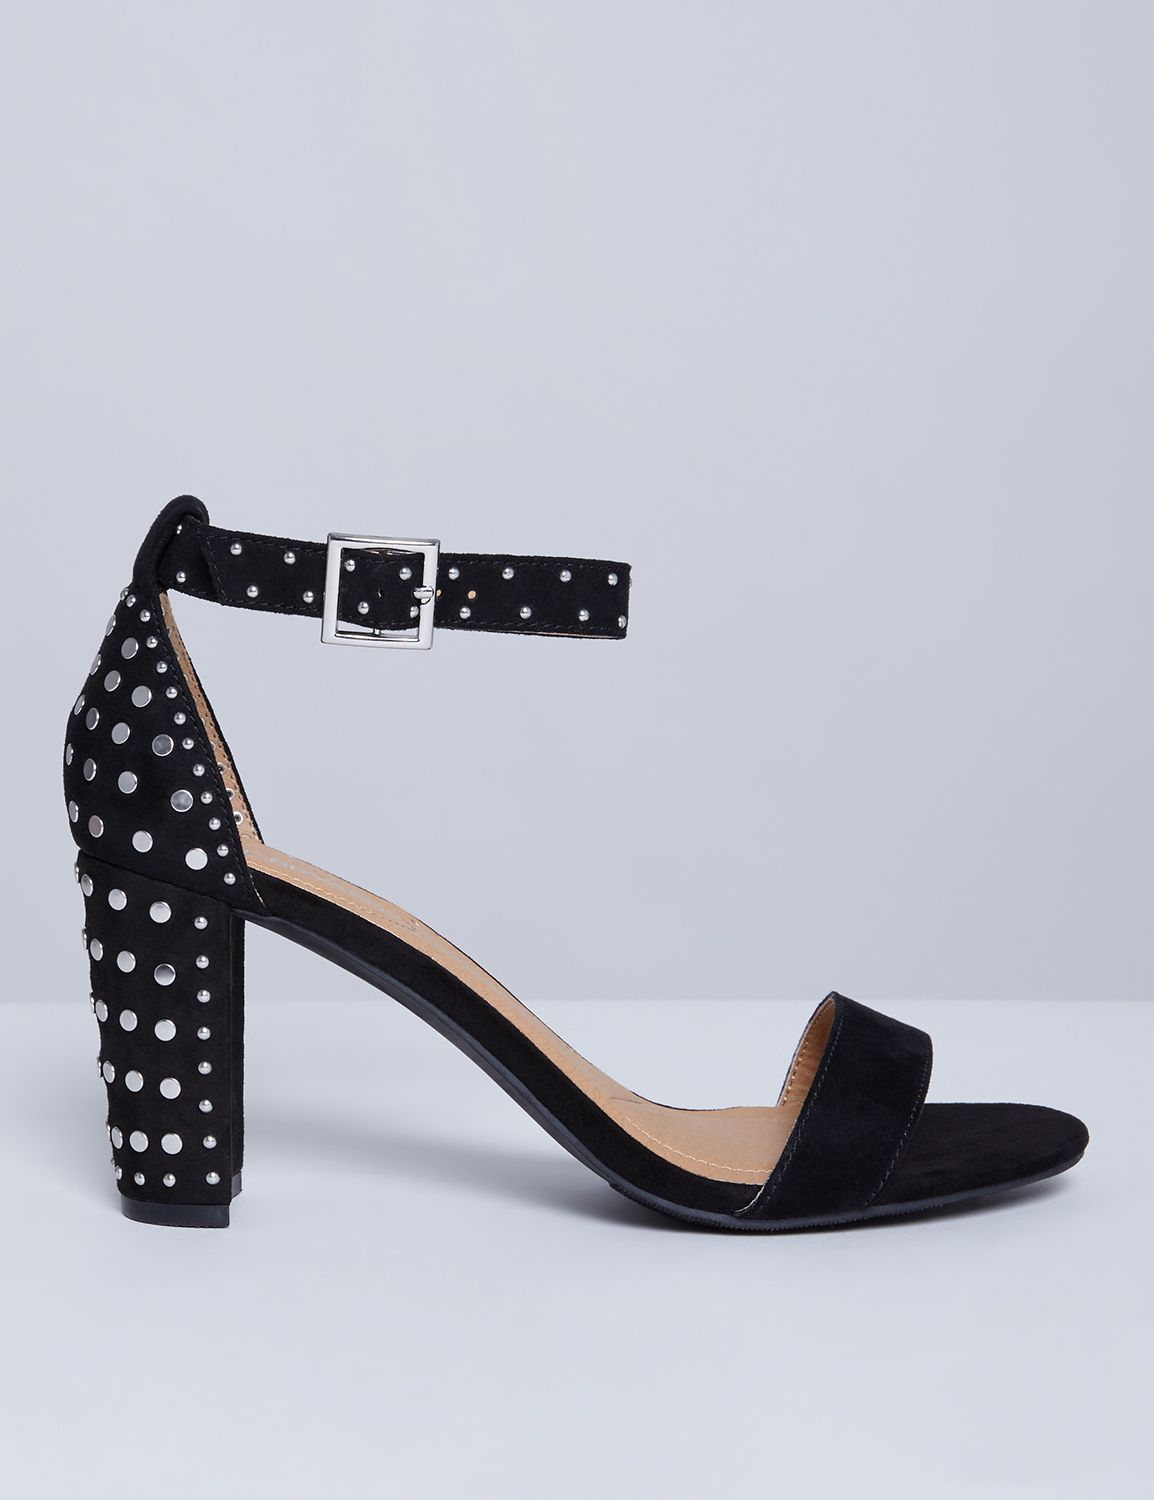 Lane Bryant Womens Studded Tall Ankle-Strap Heel 7W Pitch Black